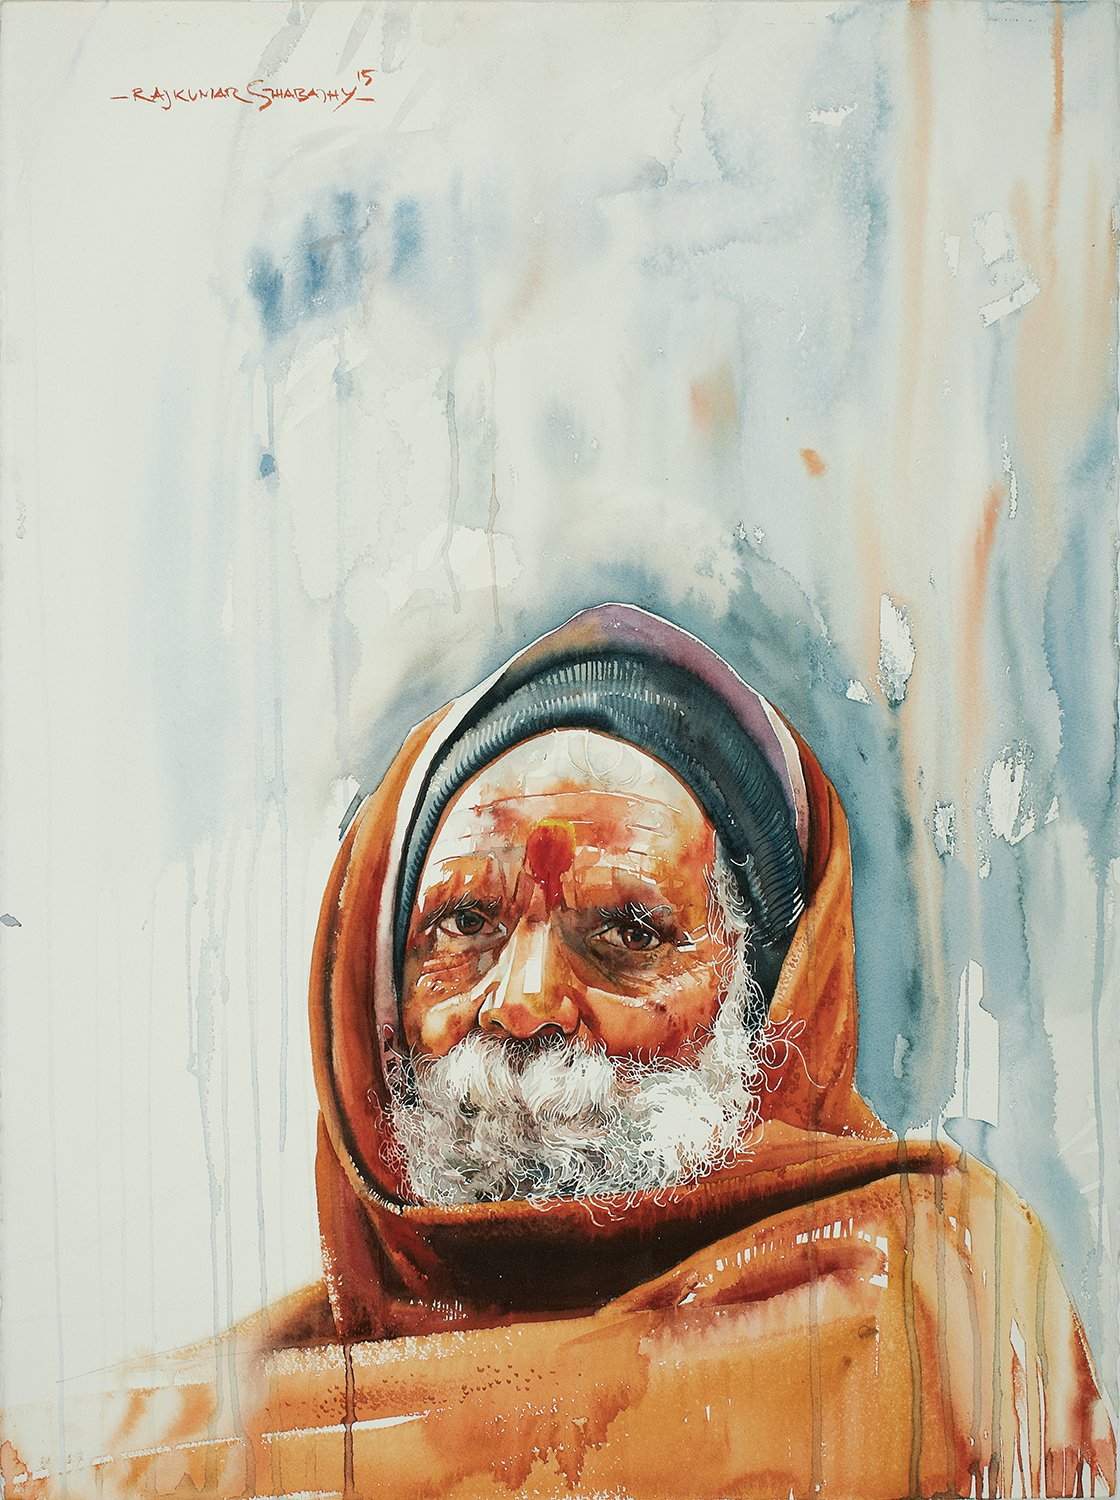 Kumbhmela Series 23|R. Rajkumar Sthabathy- Water Color on Paper, 2013, 22 x 30 inches